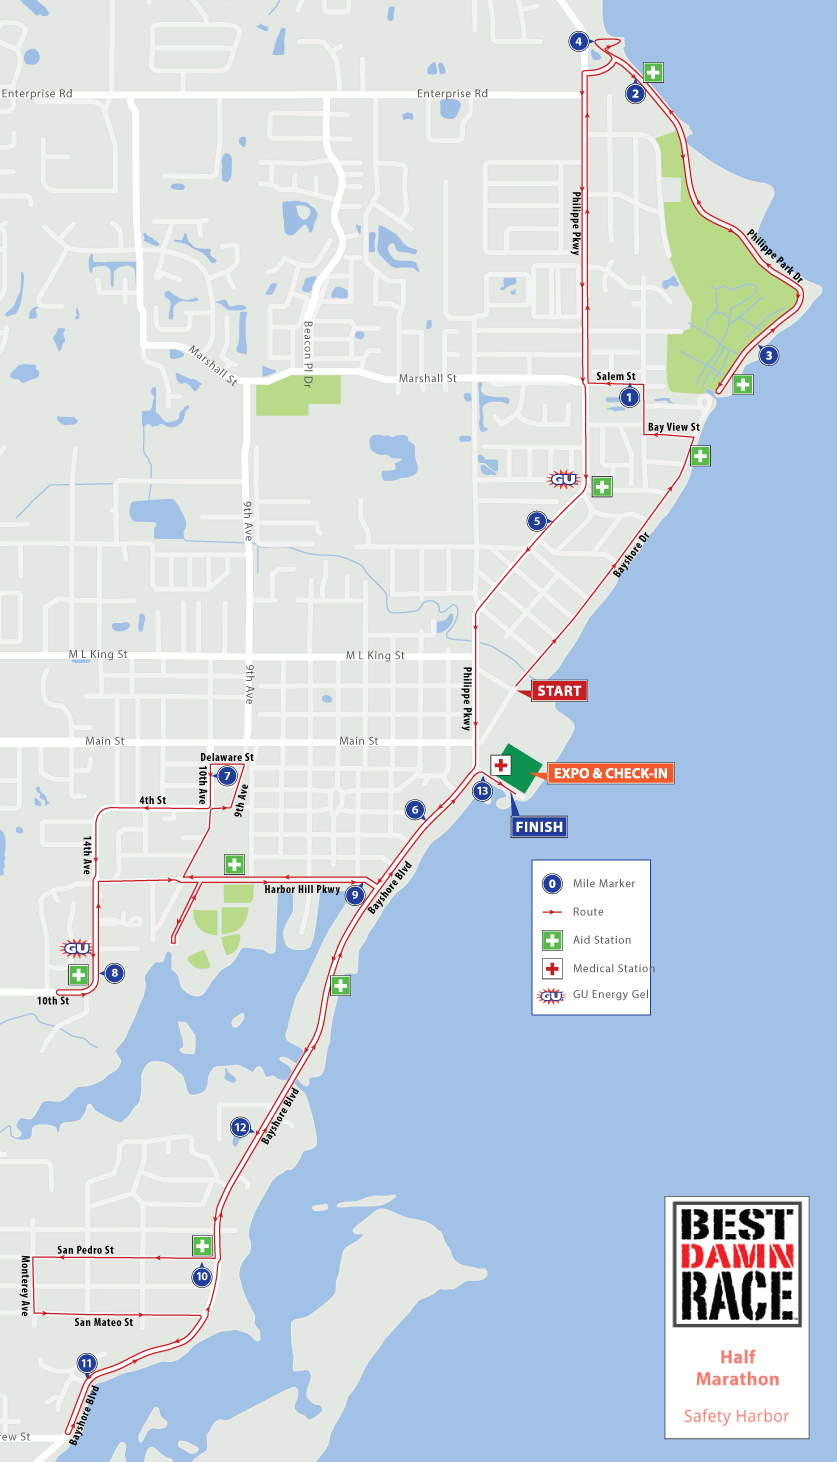 Safety Harbor Florida Map.Course Maps Best Damn Race Safety Harbor Fl